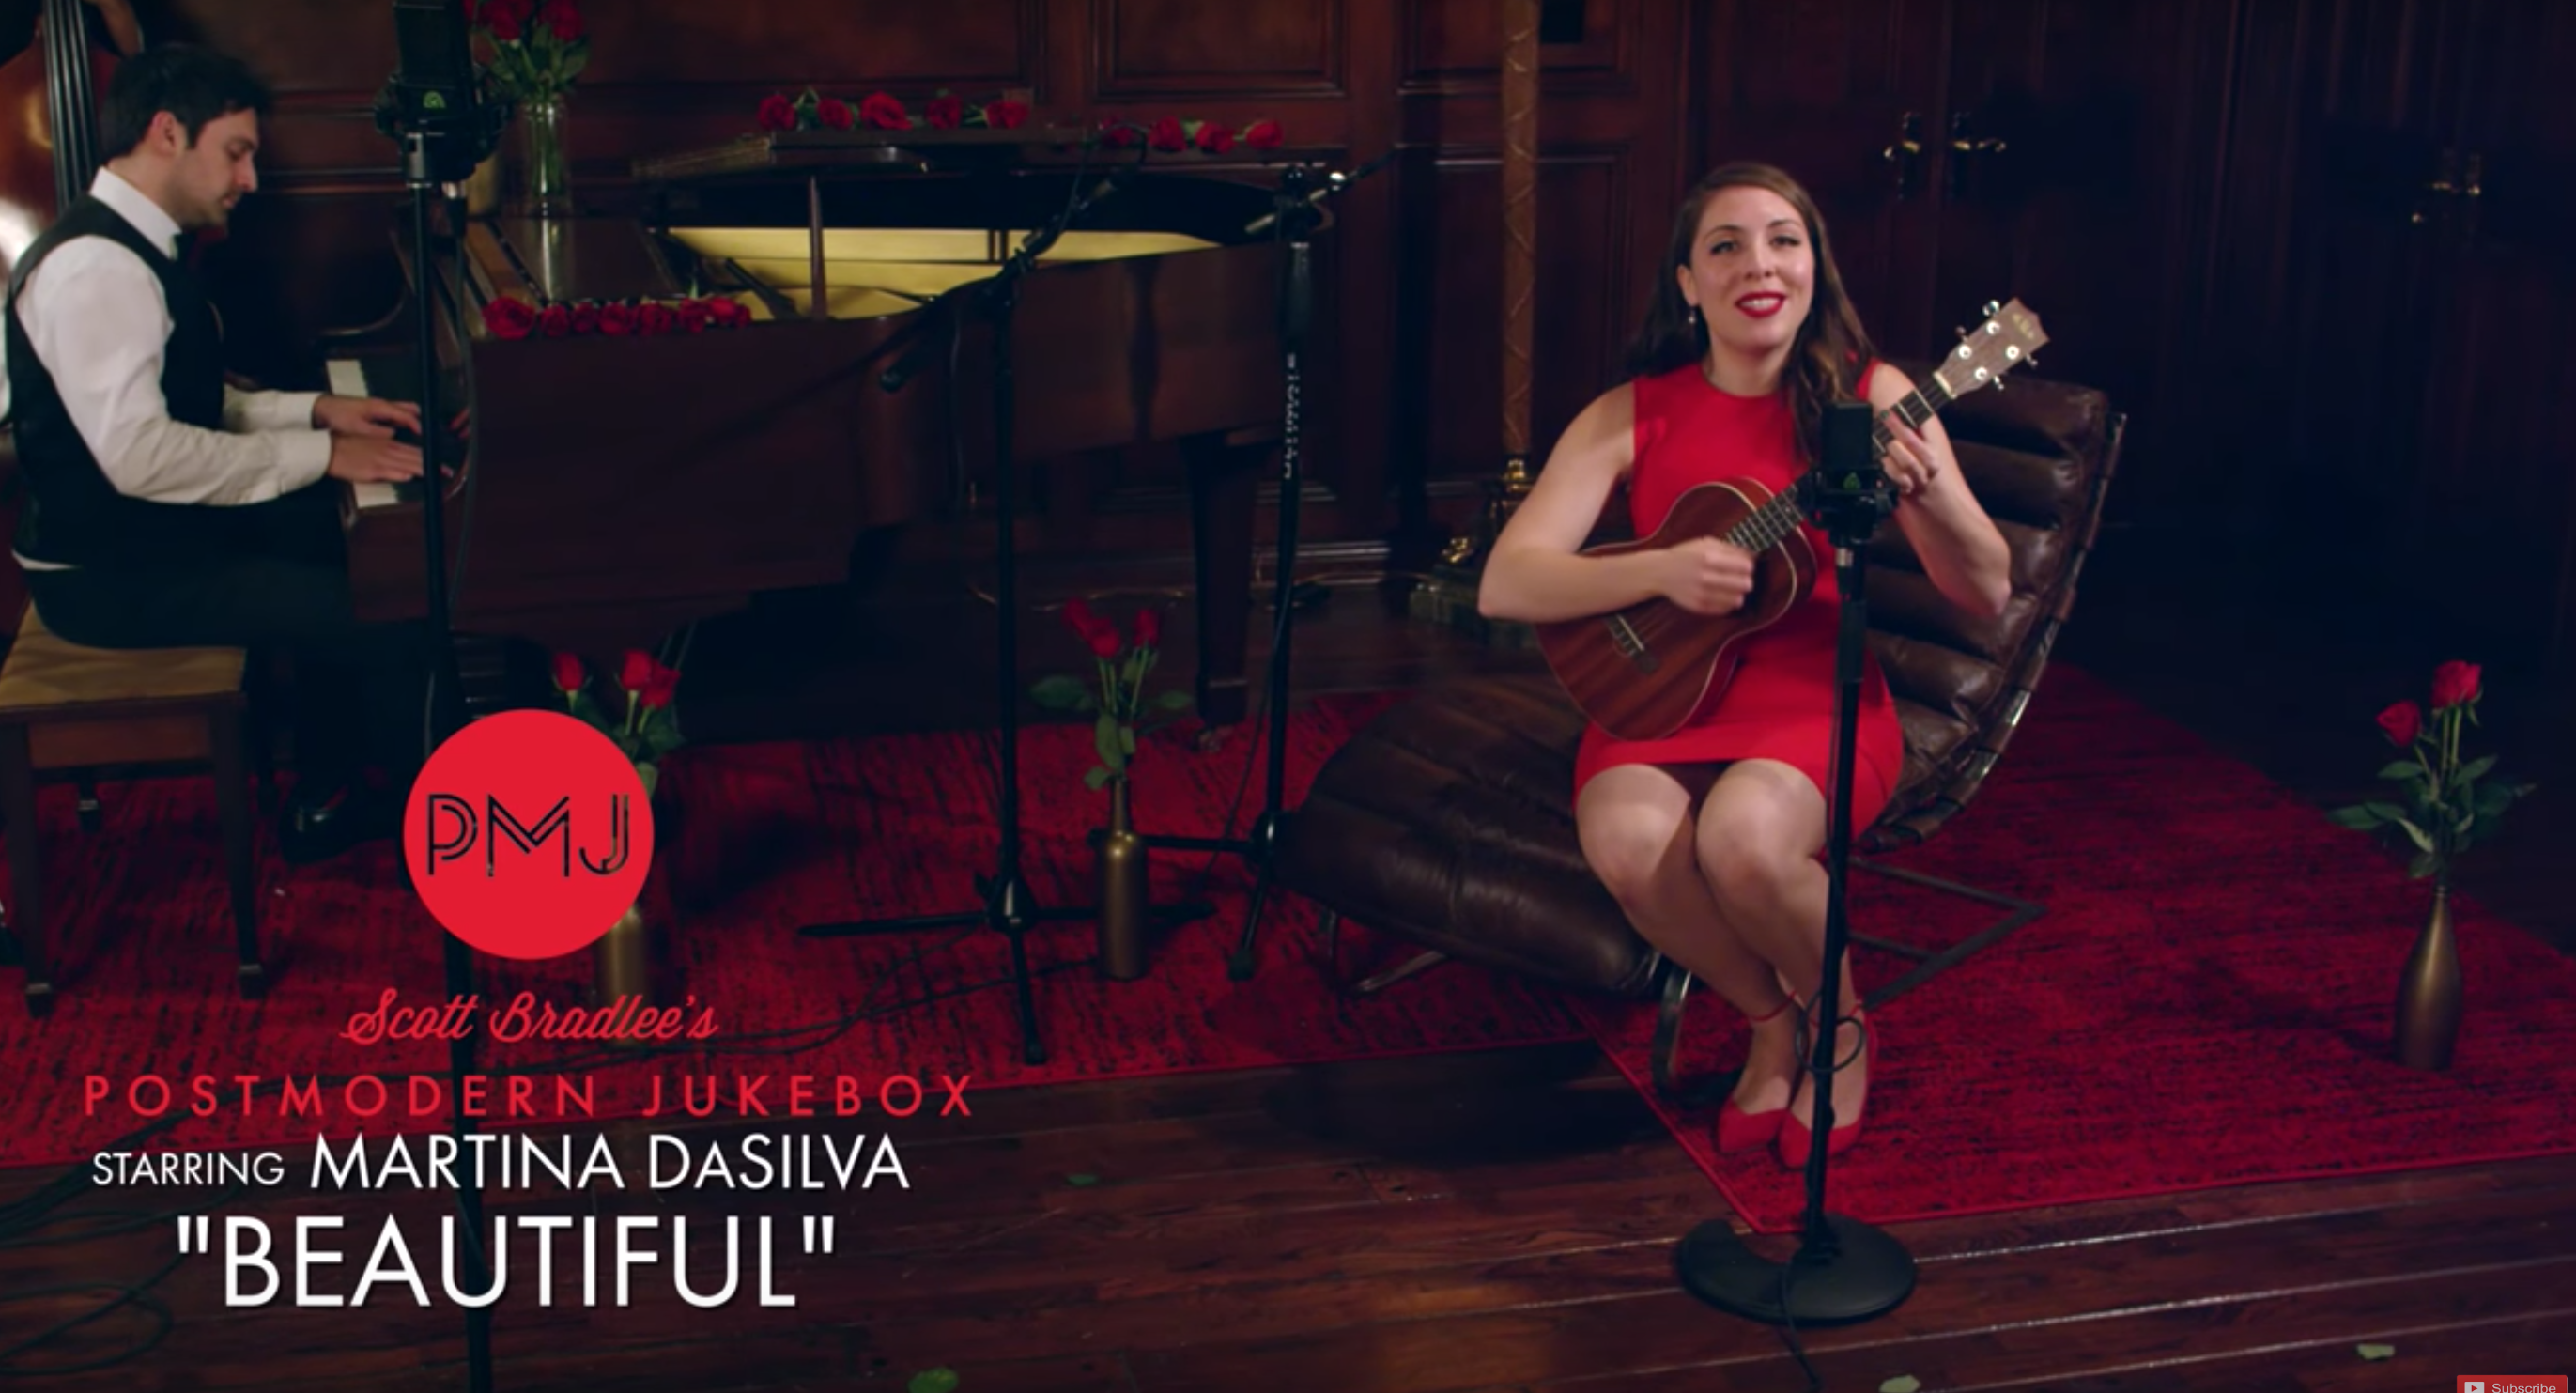 Beautiful – Christina Aguilera (Jazz Cover) ft. Martina DaSilva